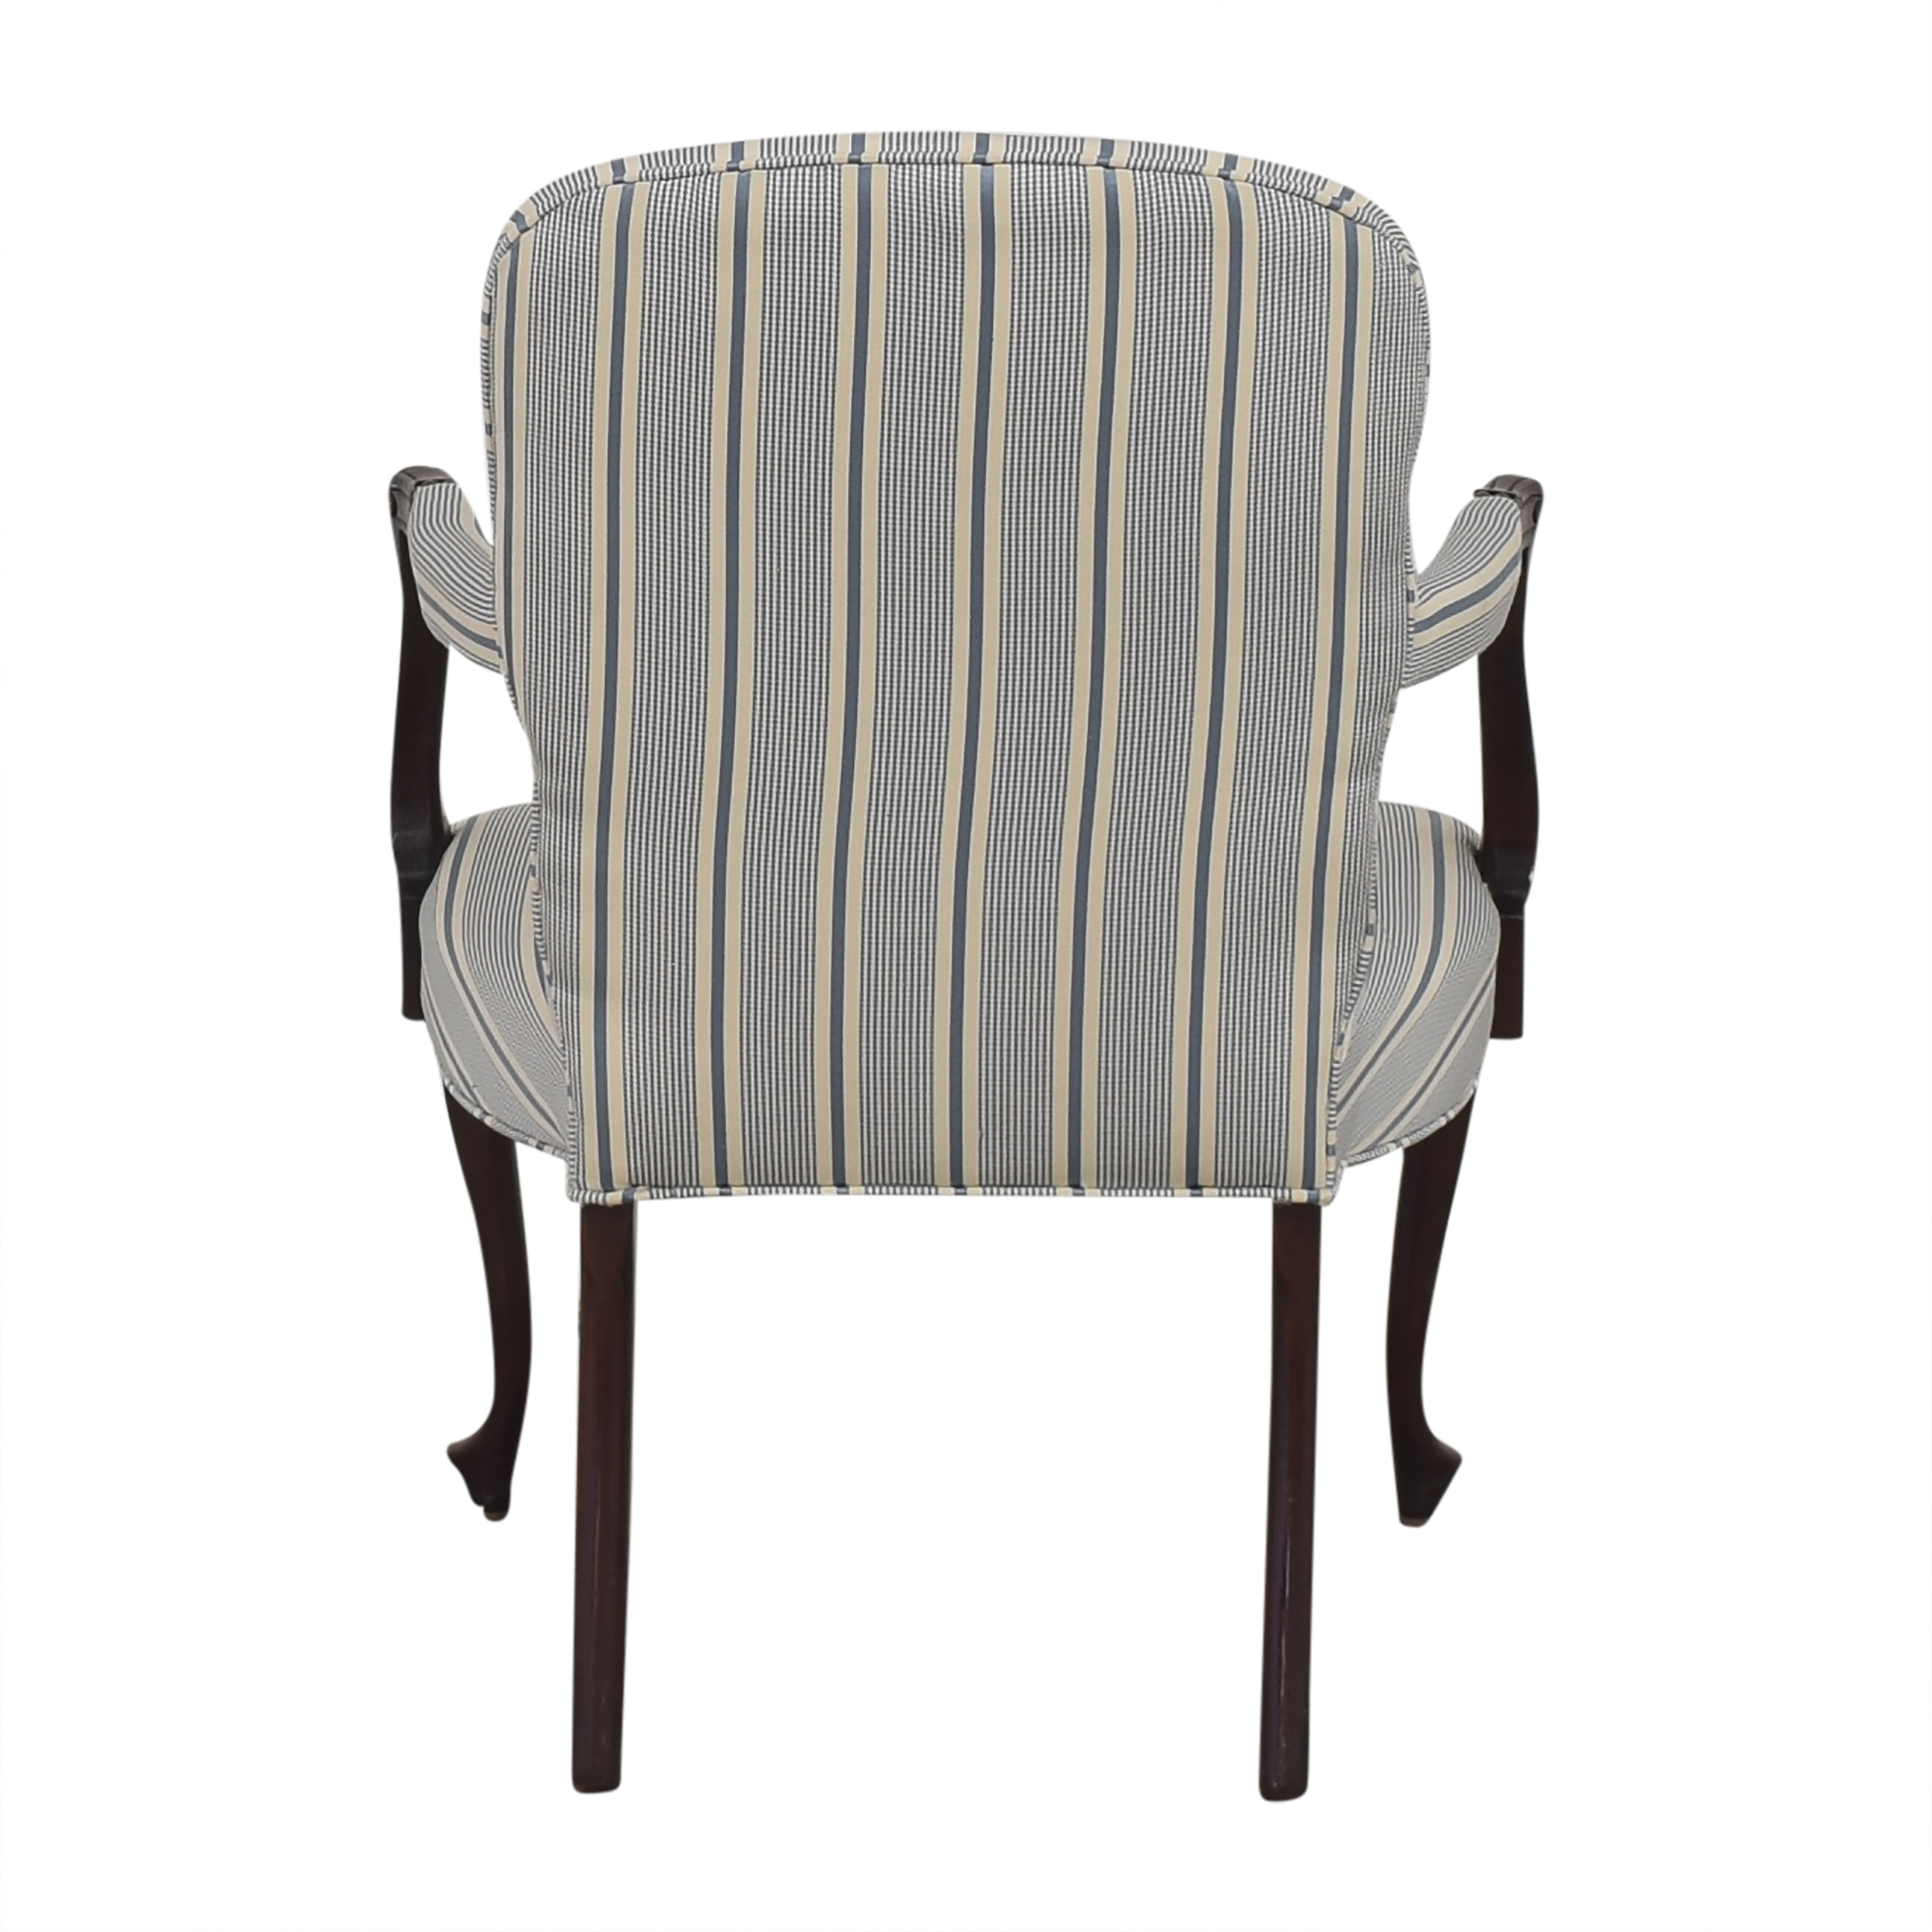 Hickory Chair Hickory Chair Upholstered Accent Chair pa